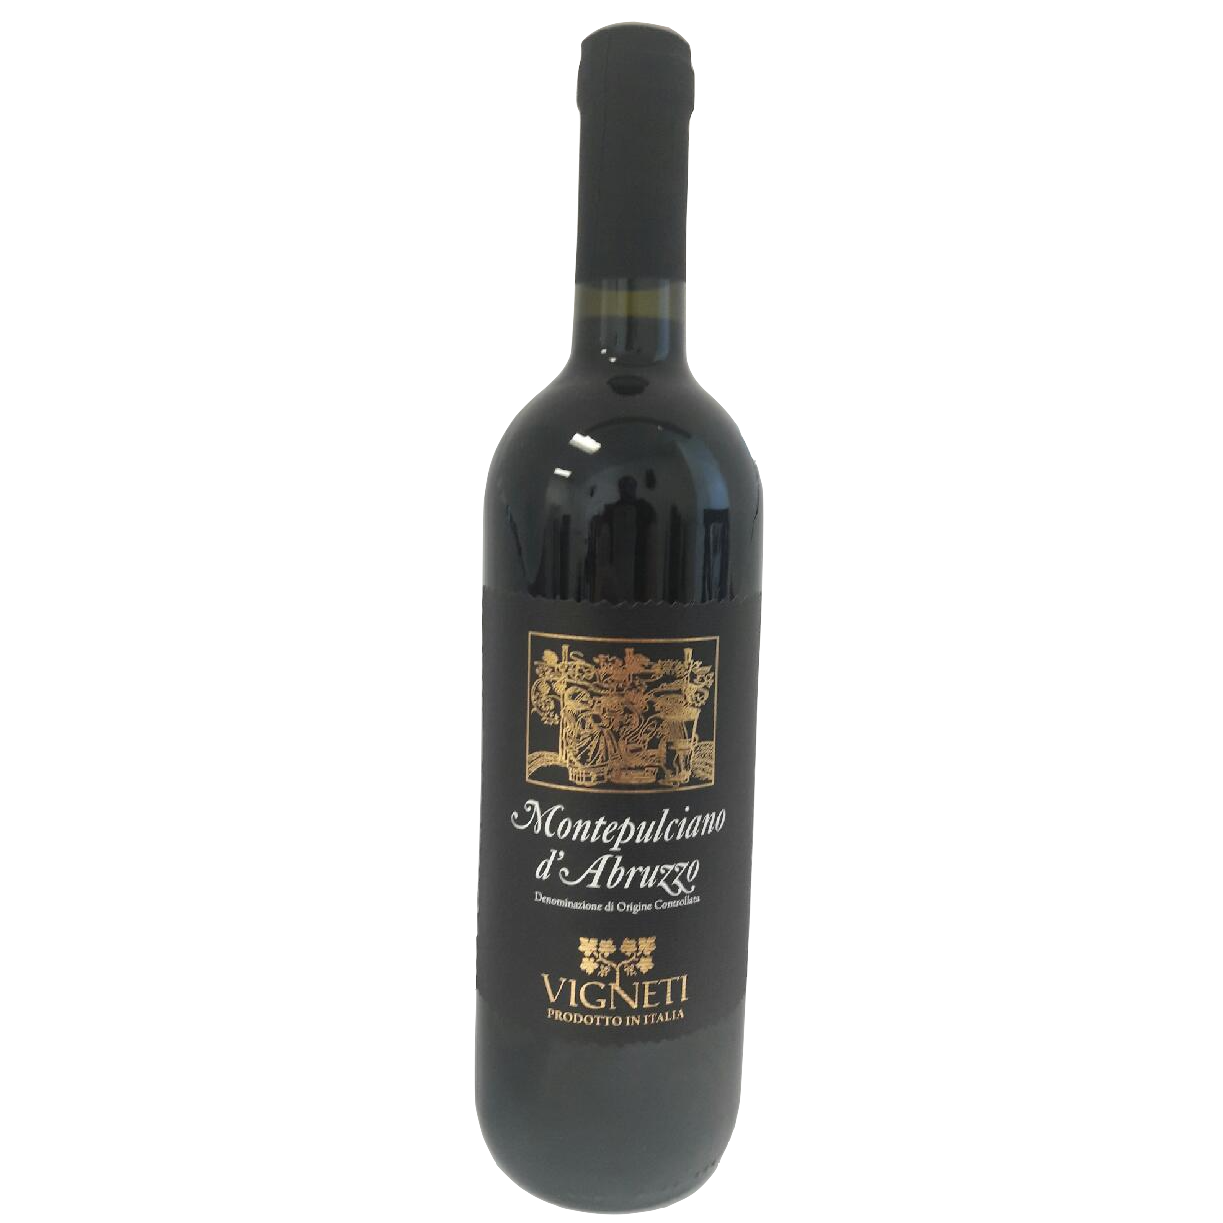 Montepulciano D'Abruzzo - Vigneti 12 pack - The Simple Wine